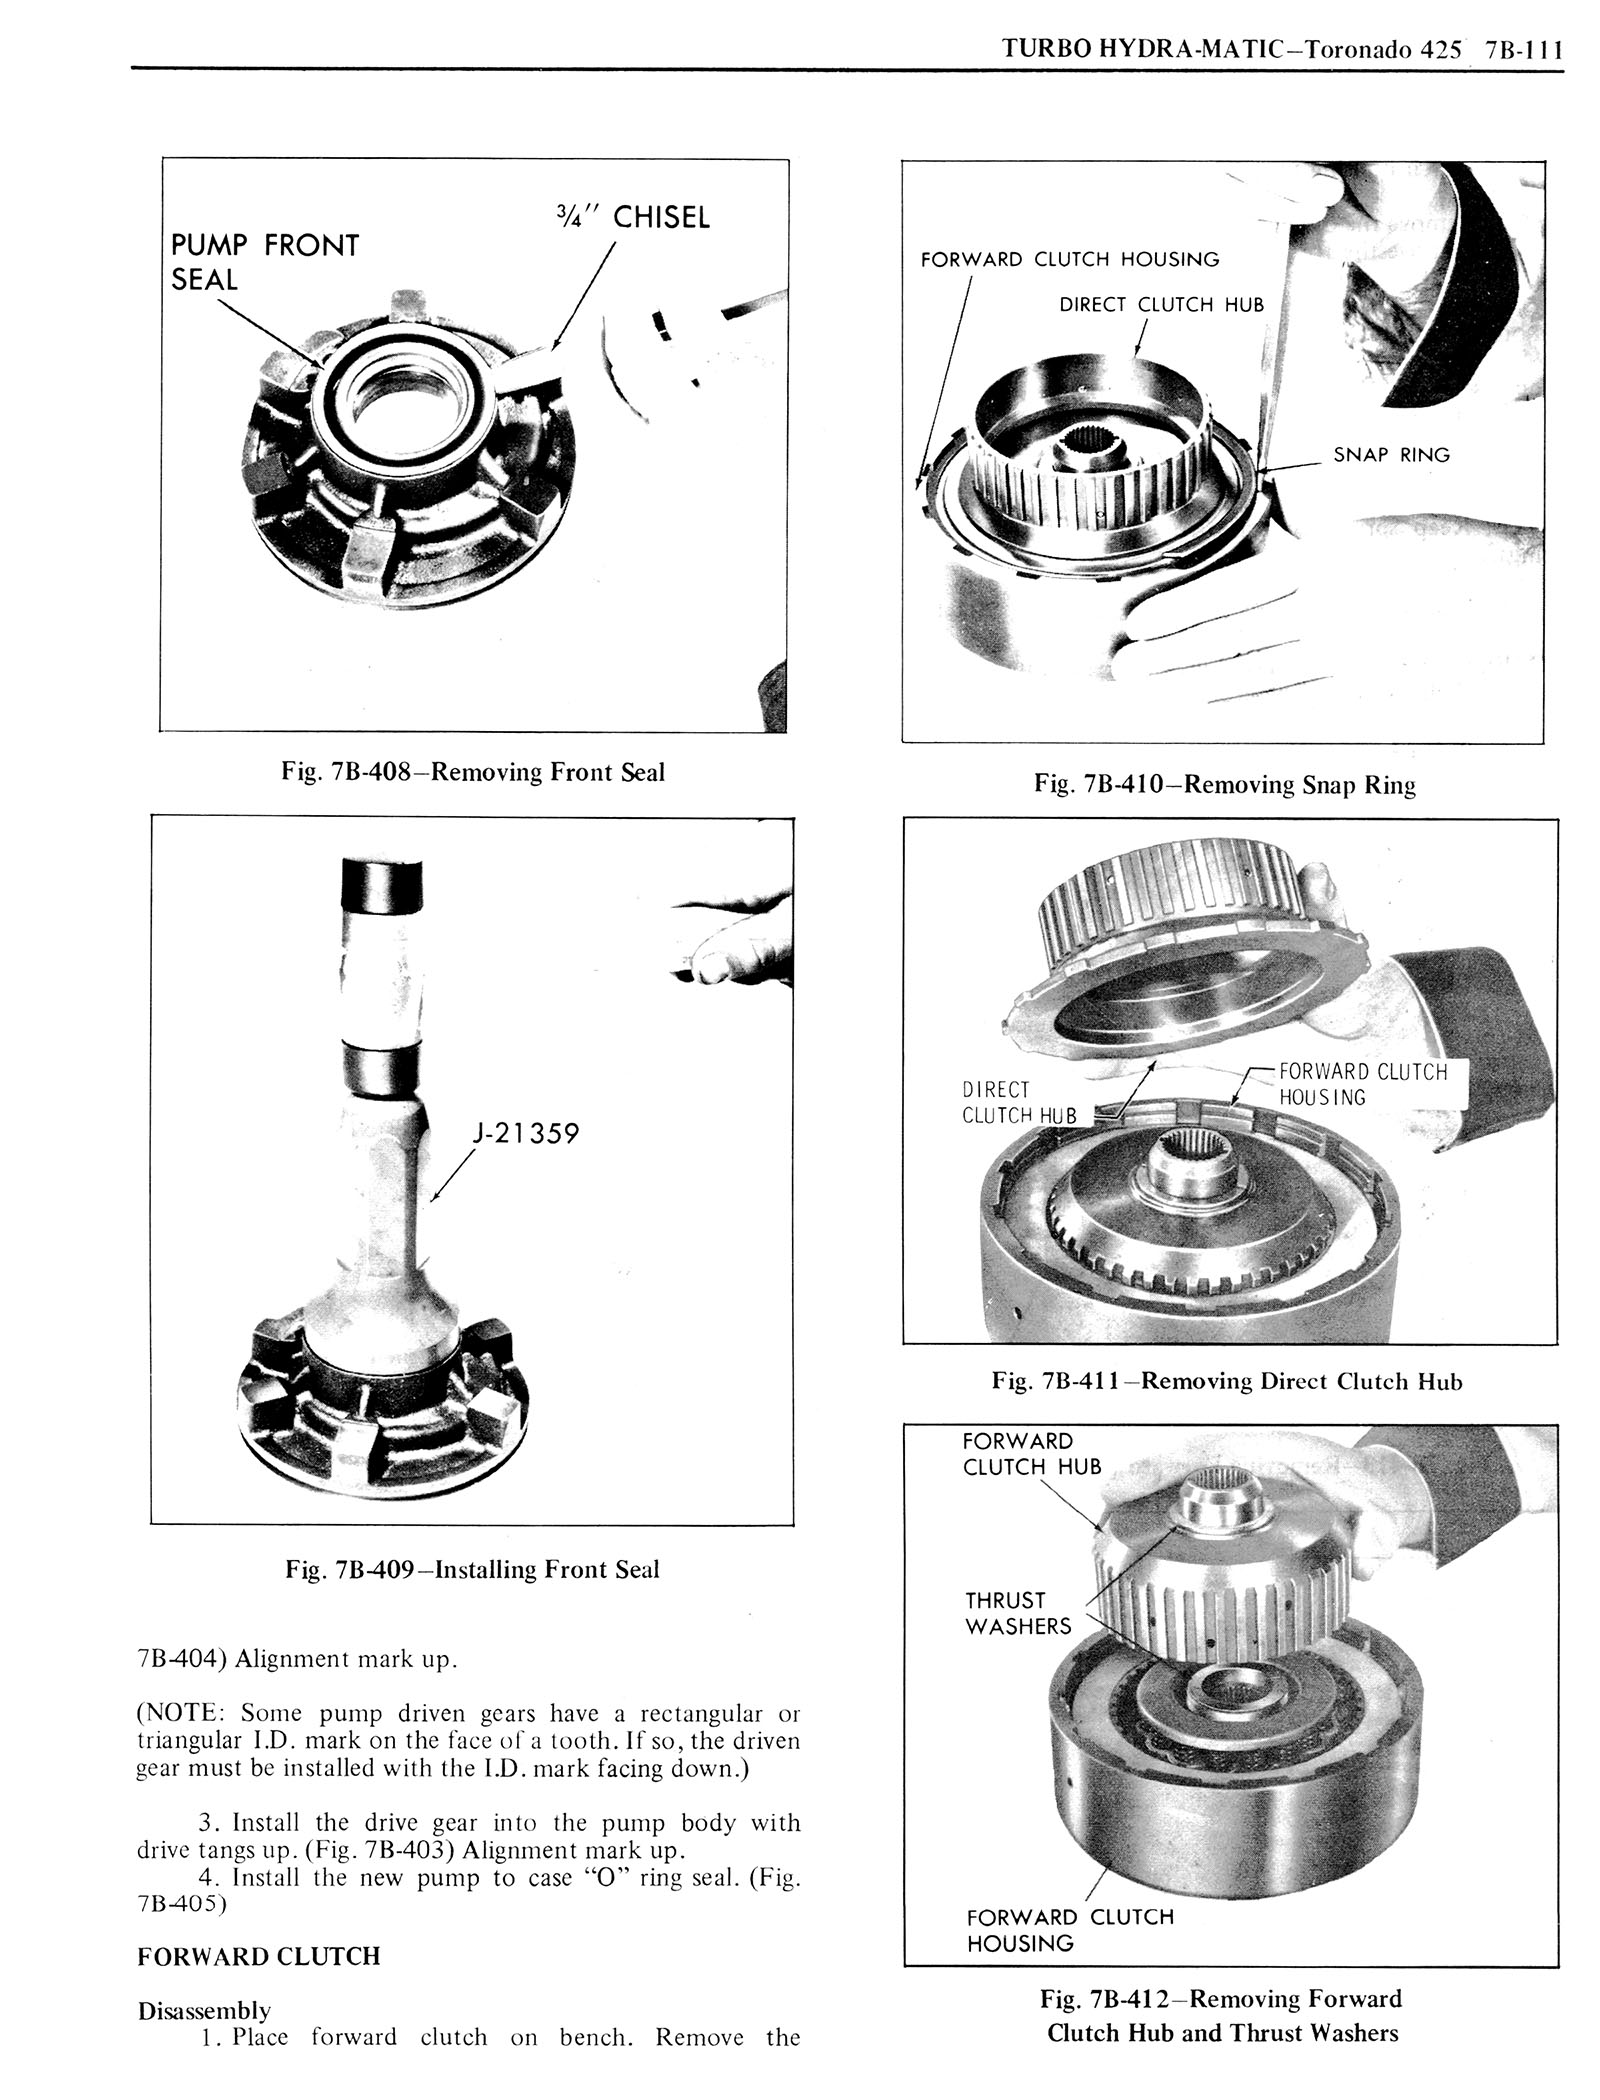 1976 Oldsmobile Service Manual page 843 of 1390